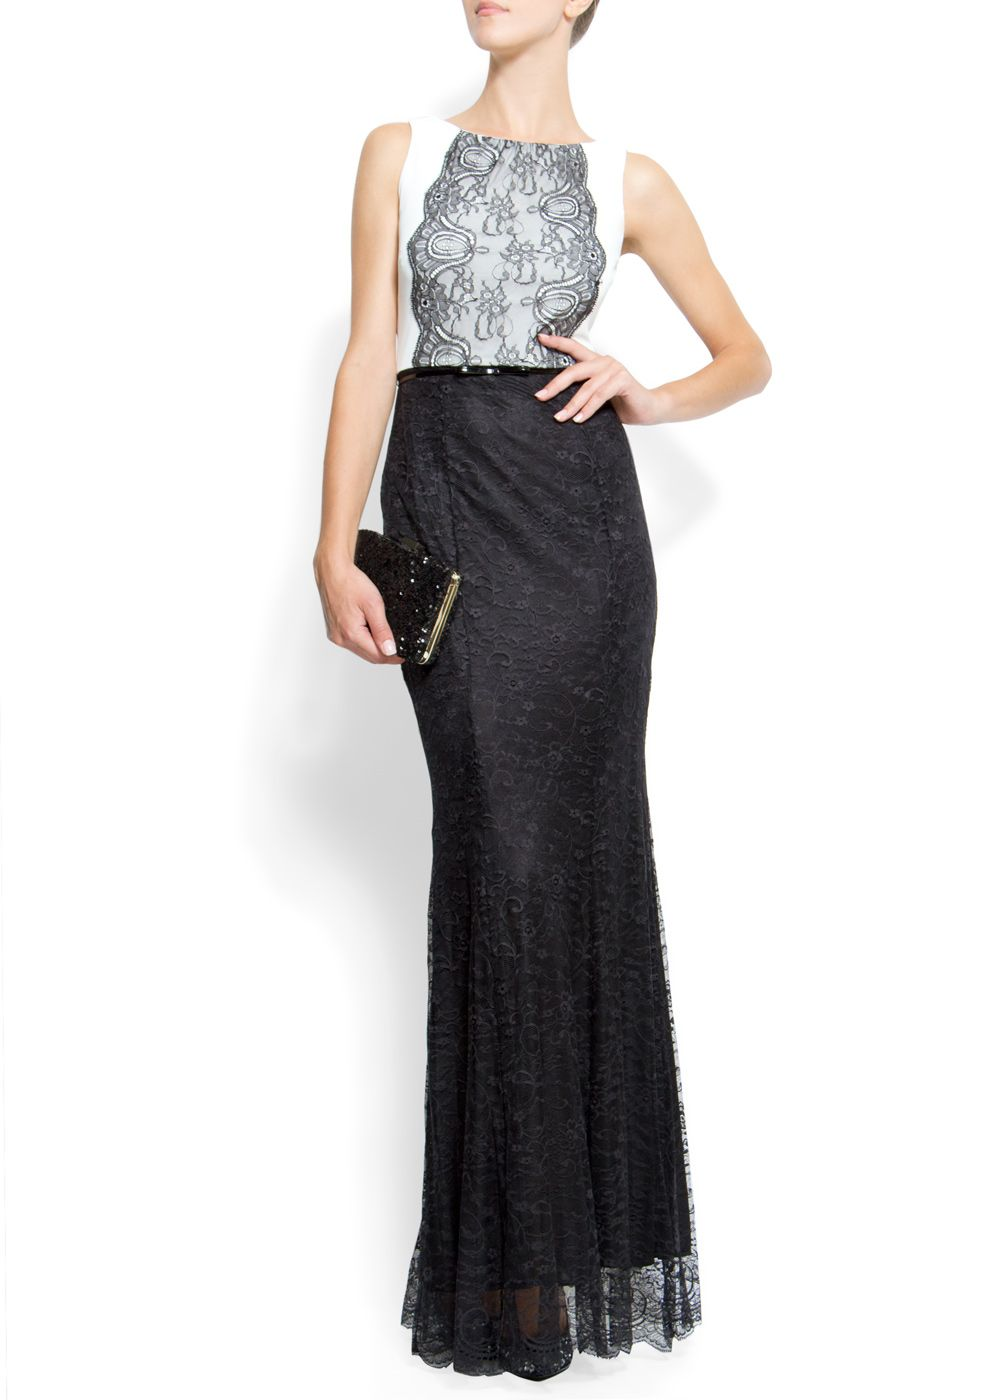 Lace gown		£114.90